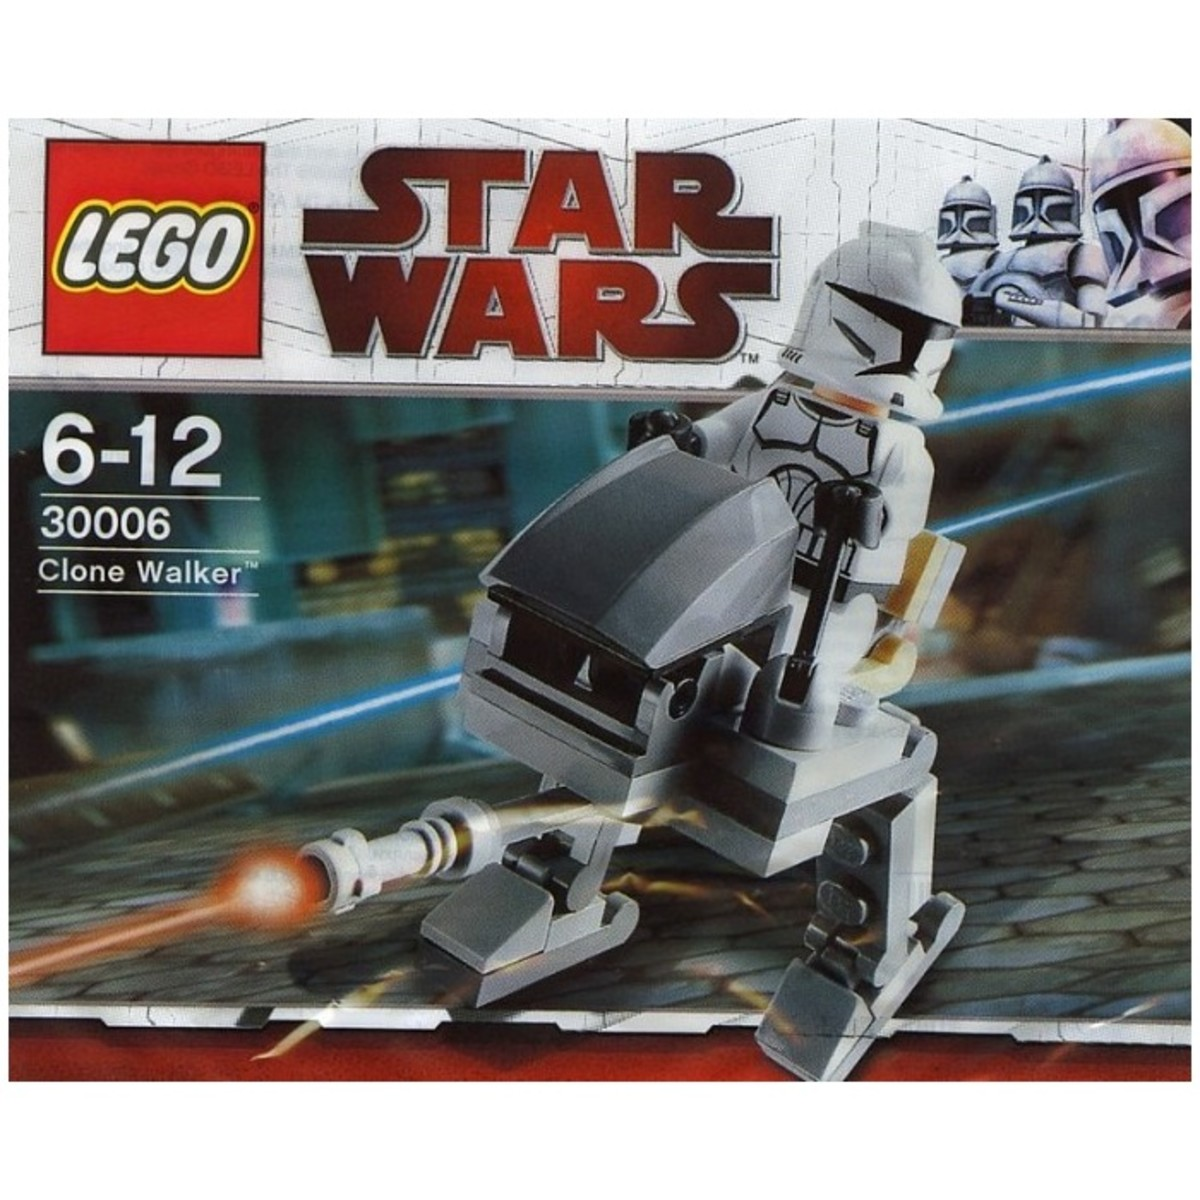 LEGO Star Wars Clone Walker 30006 Bag